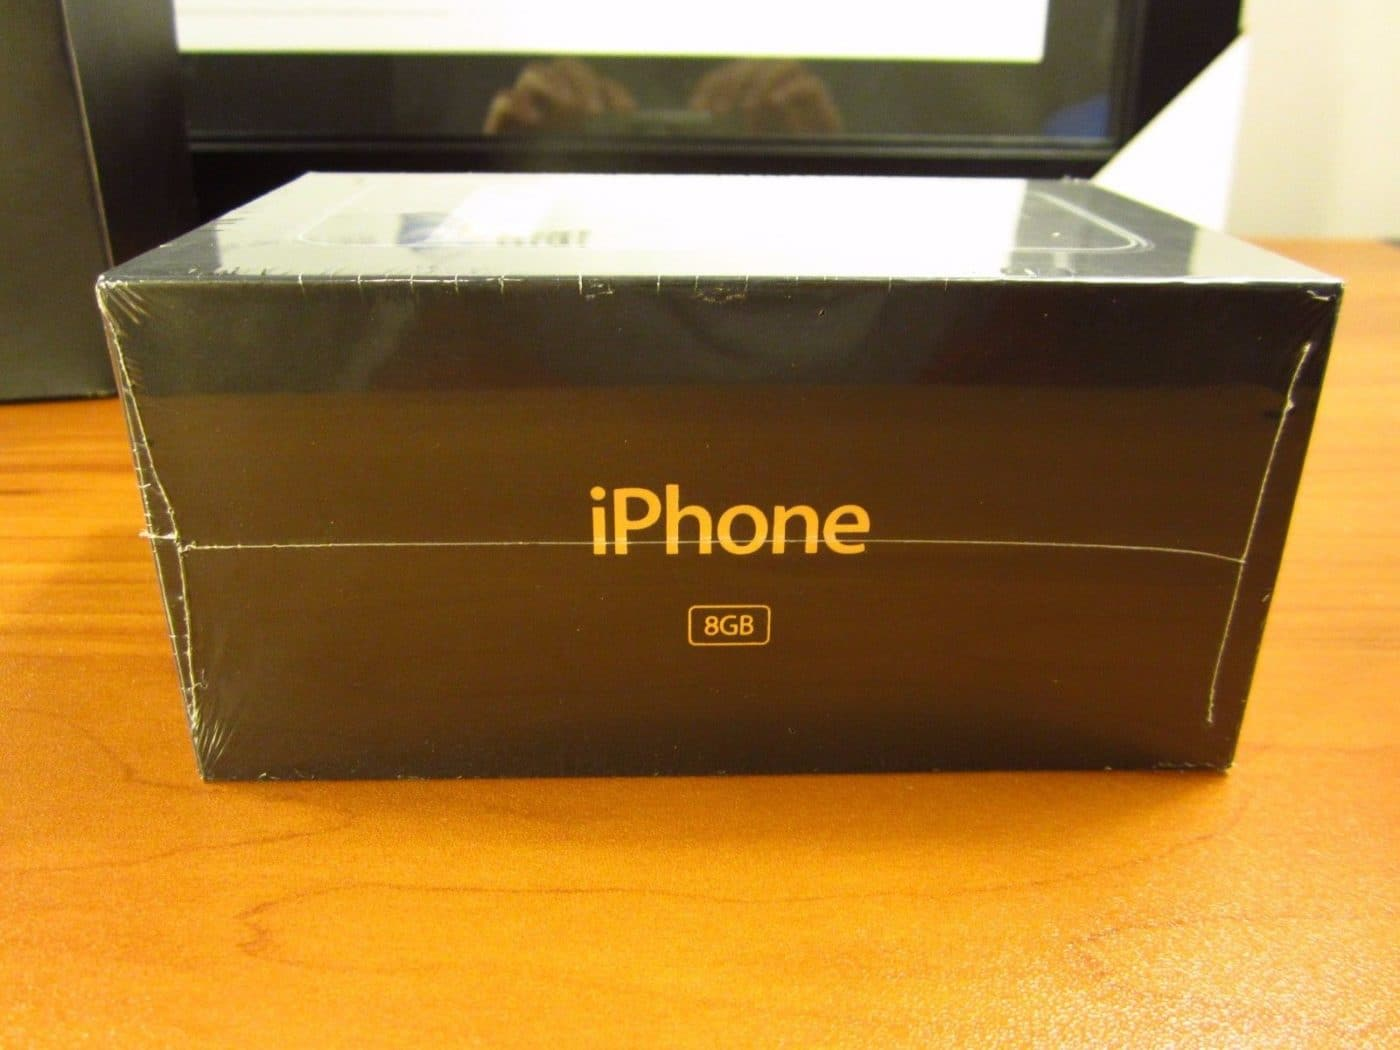 1st Generation Apple iPhone 8GB Available Sealed Pack on eBay, For a Hefty Price